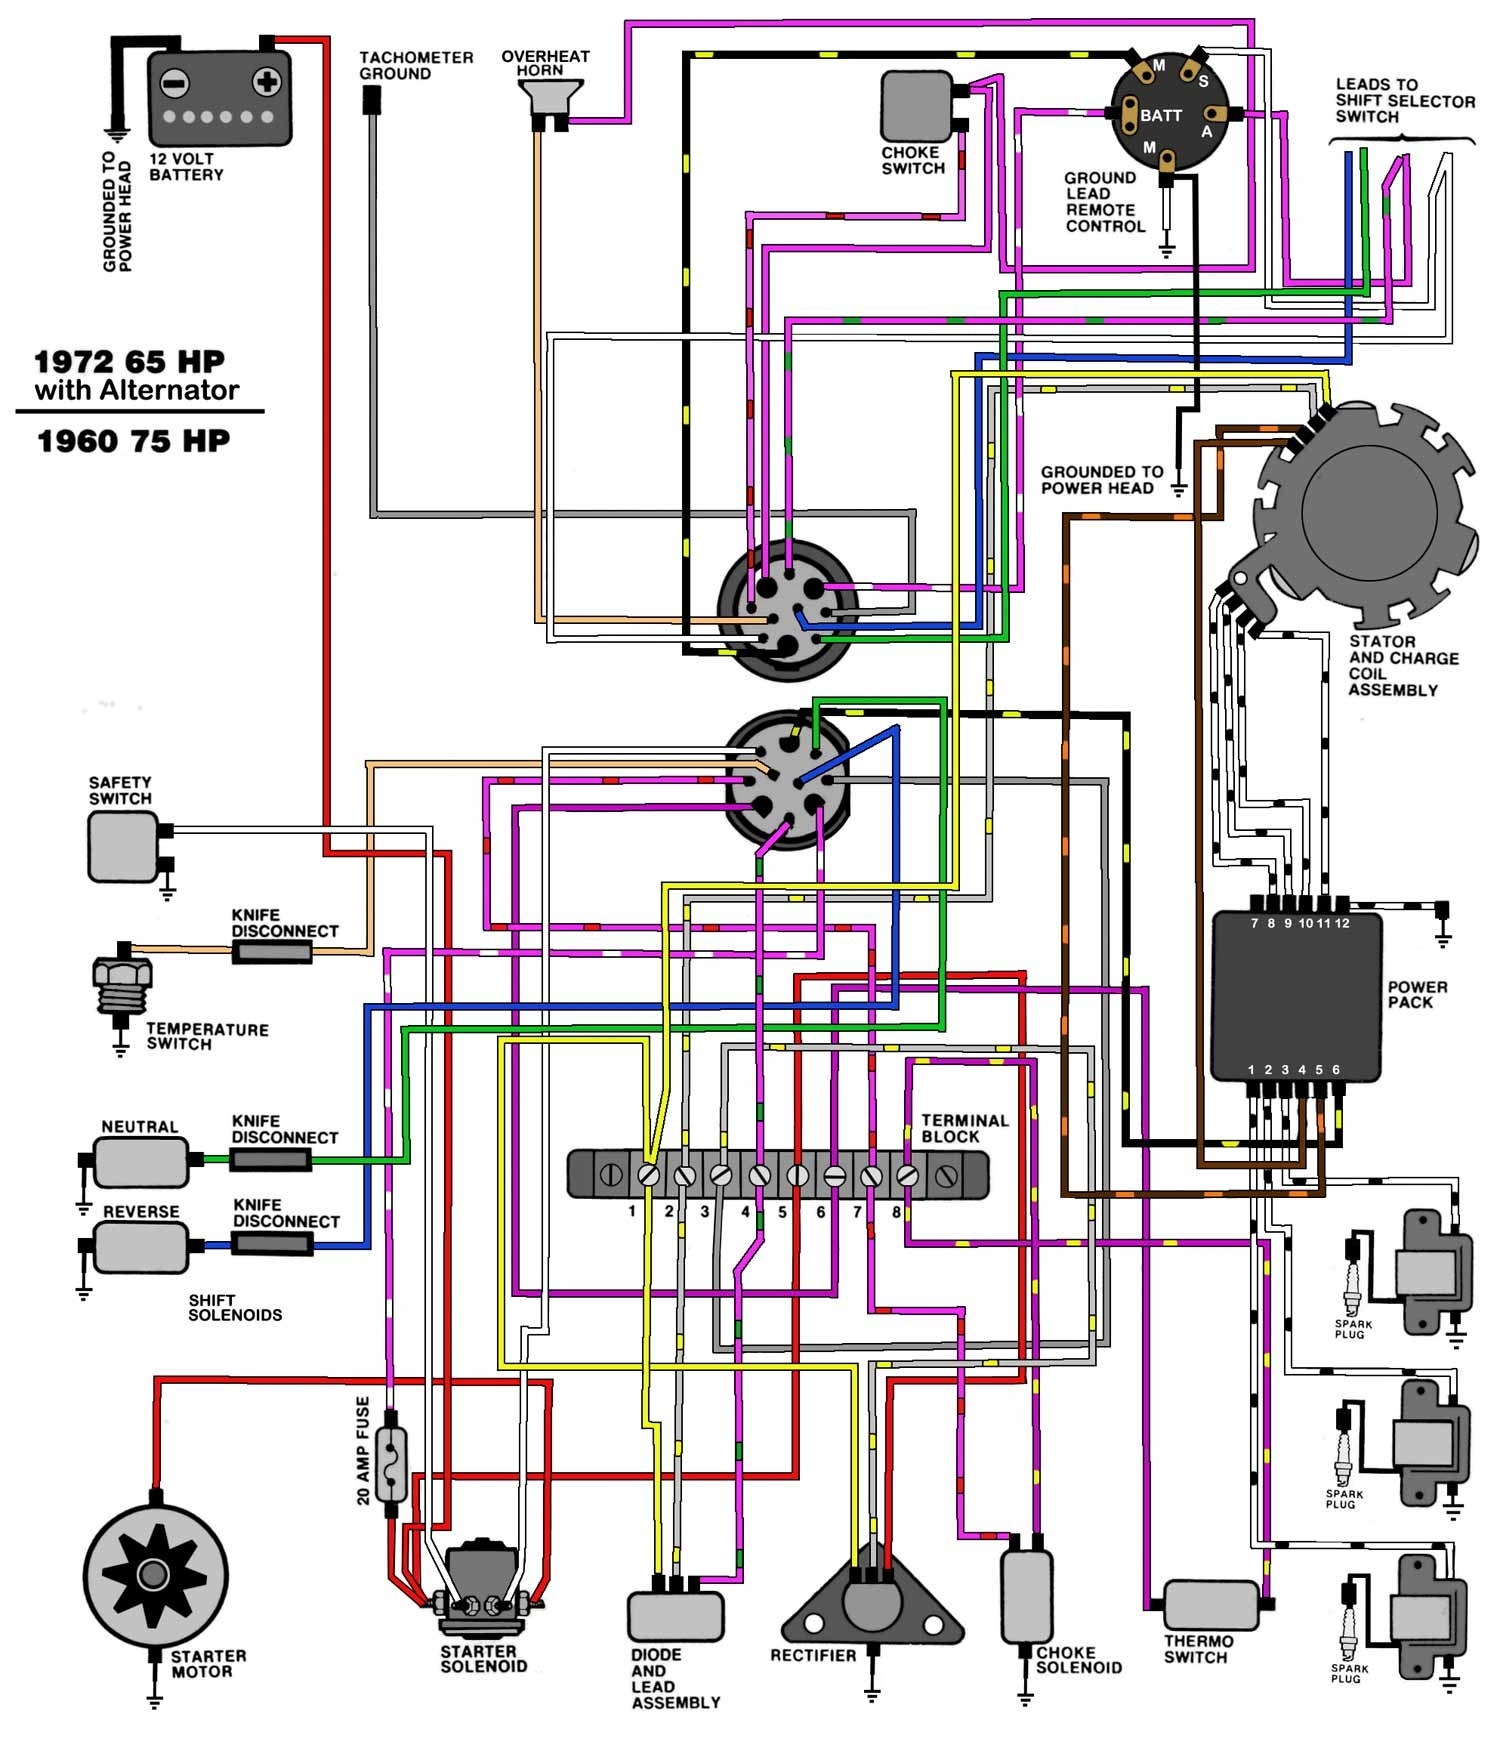 Mercury Outboard Voltmeter Wiring Diagram Oven Wiring 240 Outlet – Johnson 90 Wiring Diagram